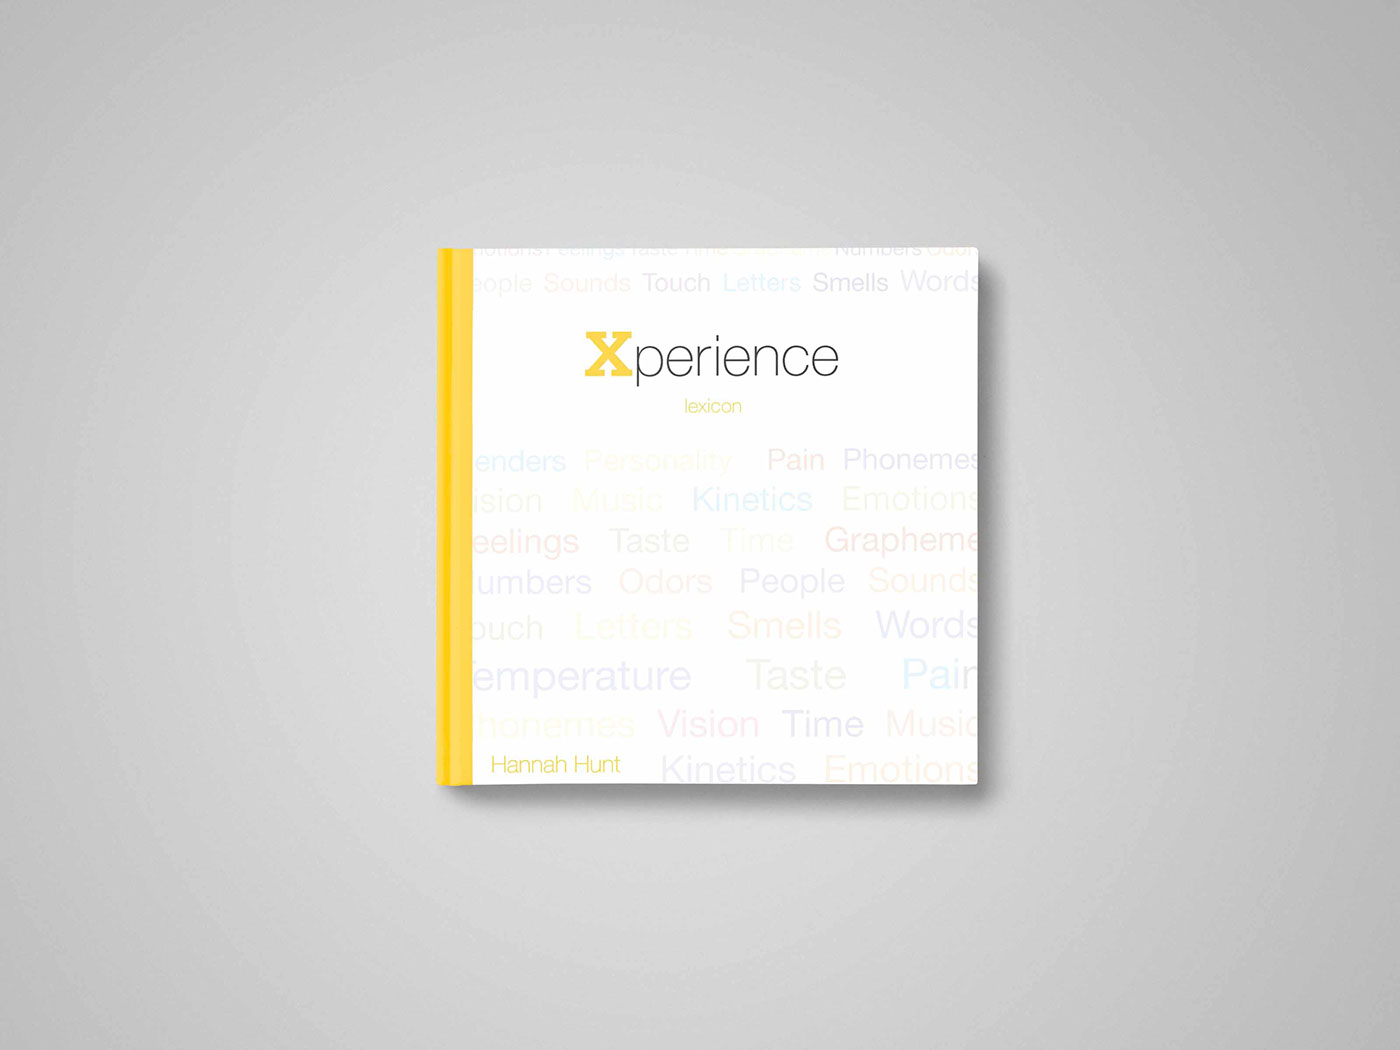 XPerience on Behance